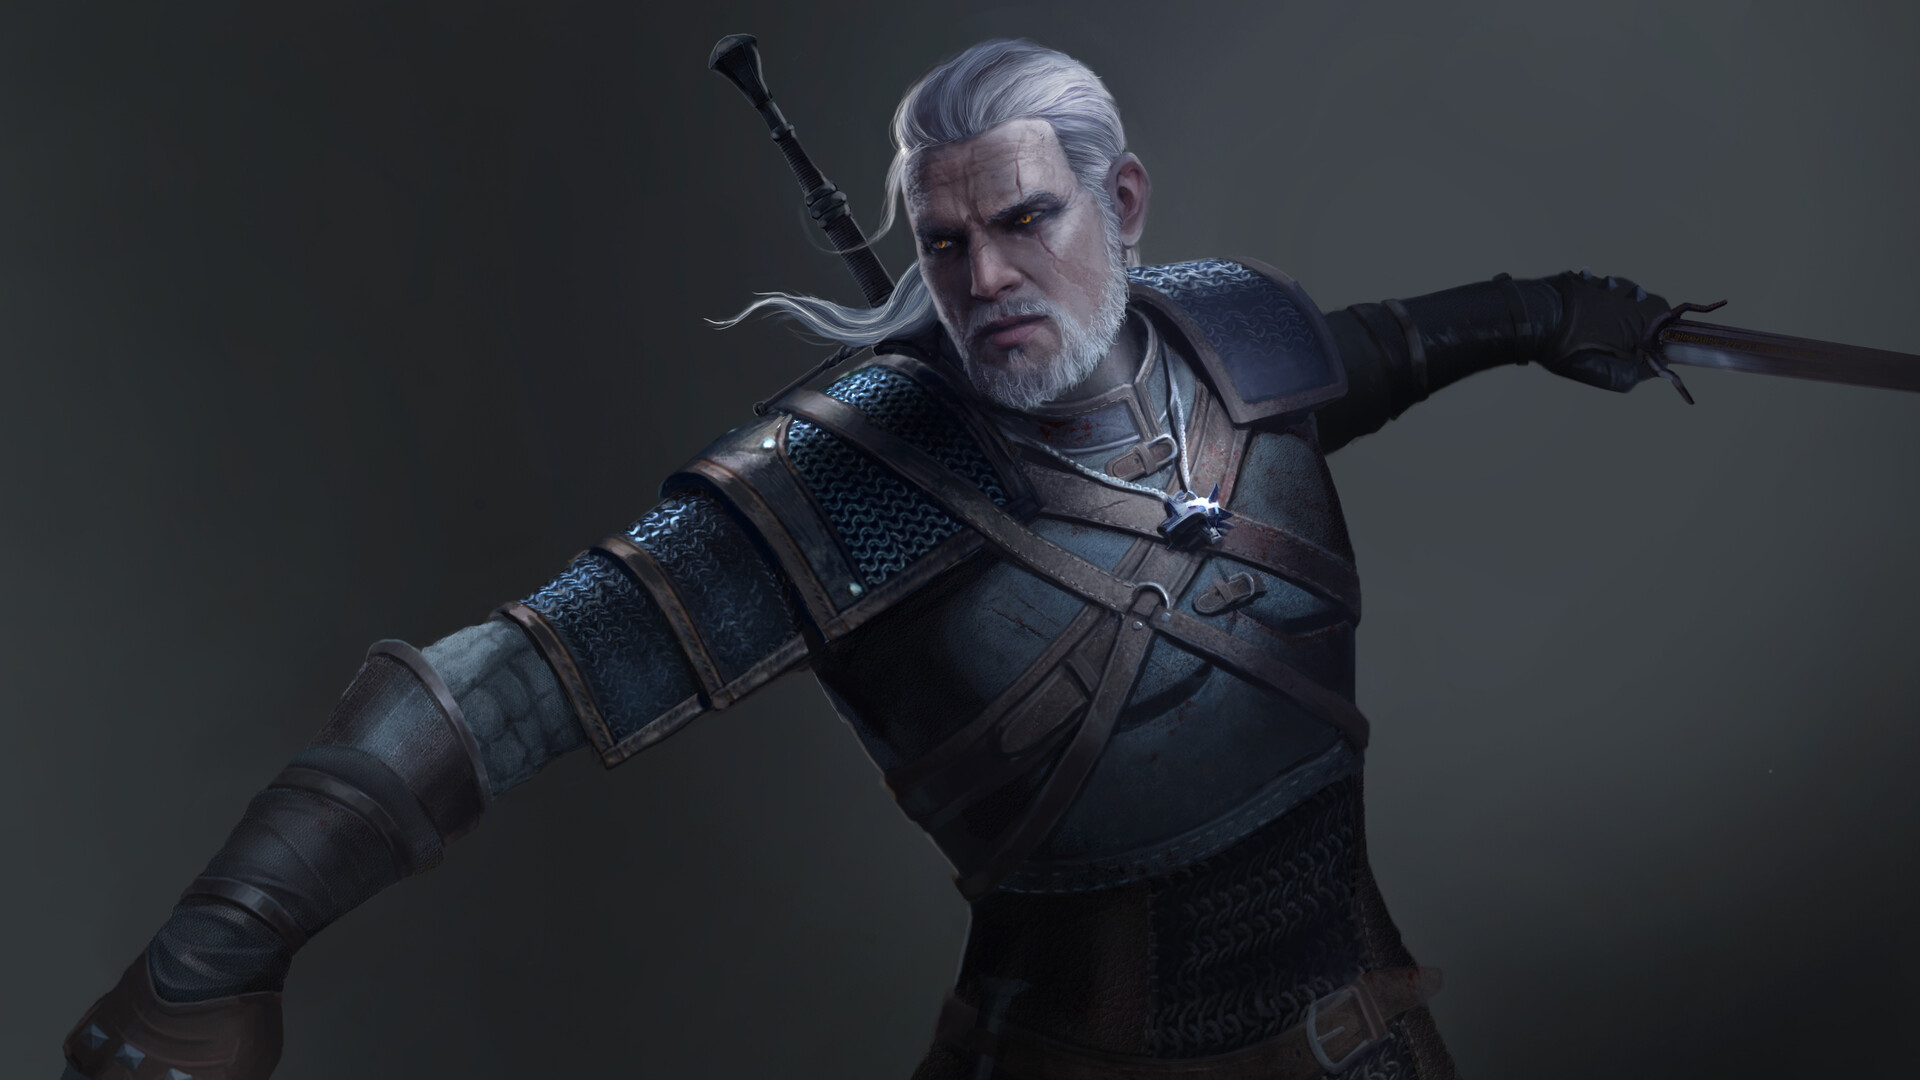 1920x1080 Geralt In The Witcher 3 1080p Laptop Full Hd Wallpaper Hd Games 4k Wallpapers Images Photos And Background